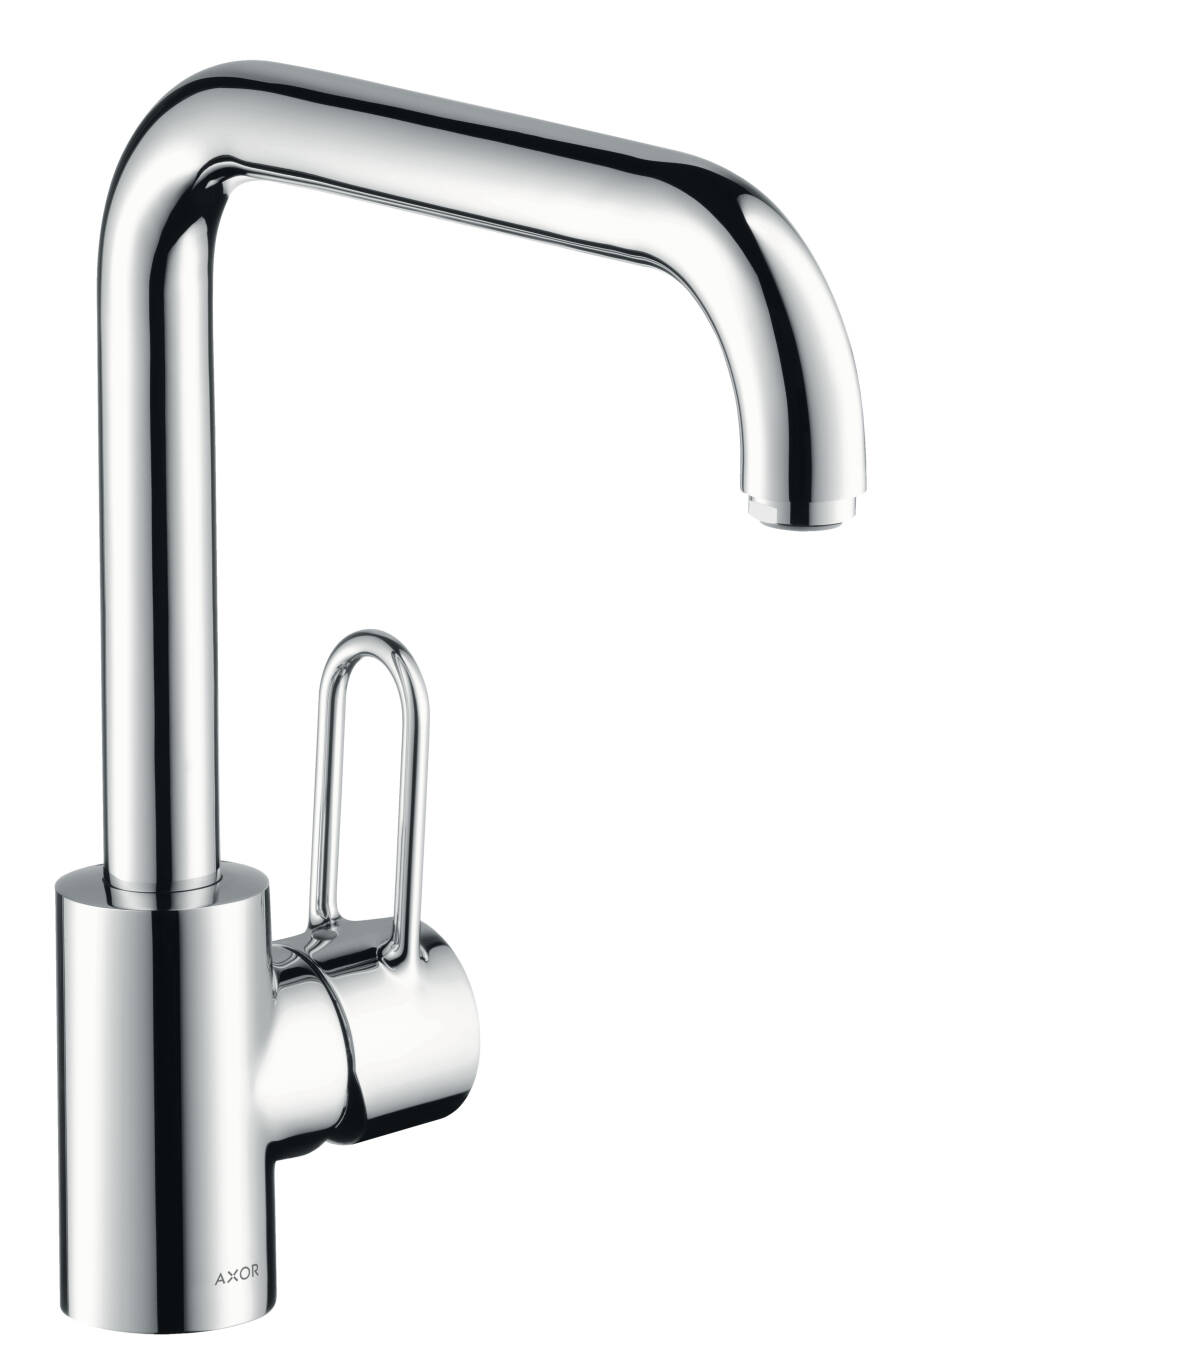 Single lever kitchen mixer 230 with swivel spout, Polished Brass, 14850930